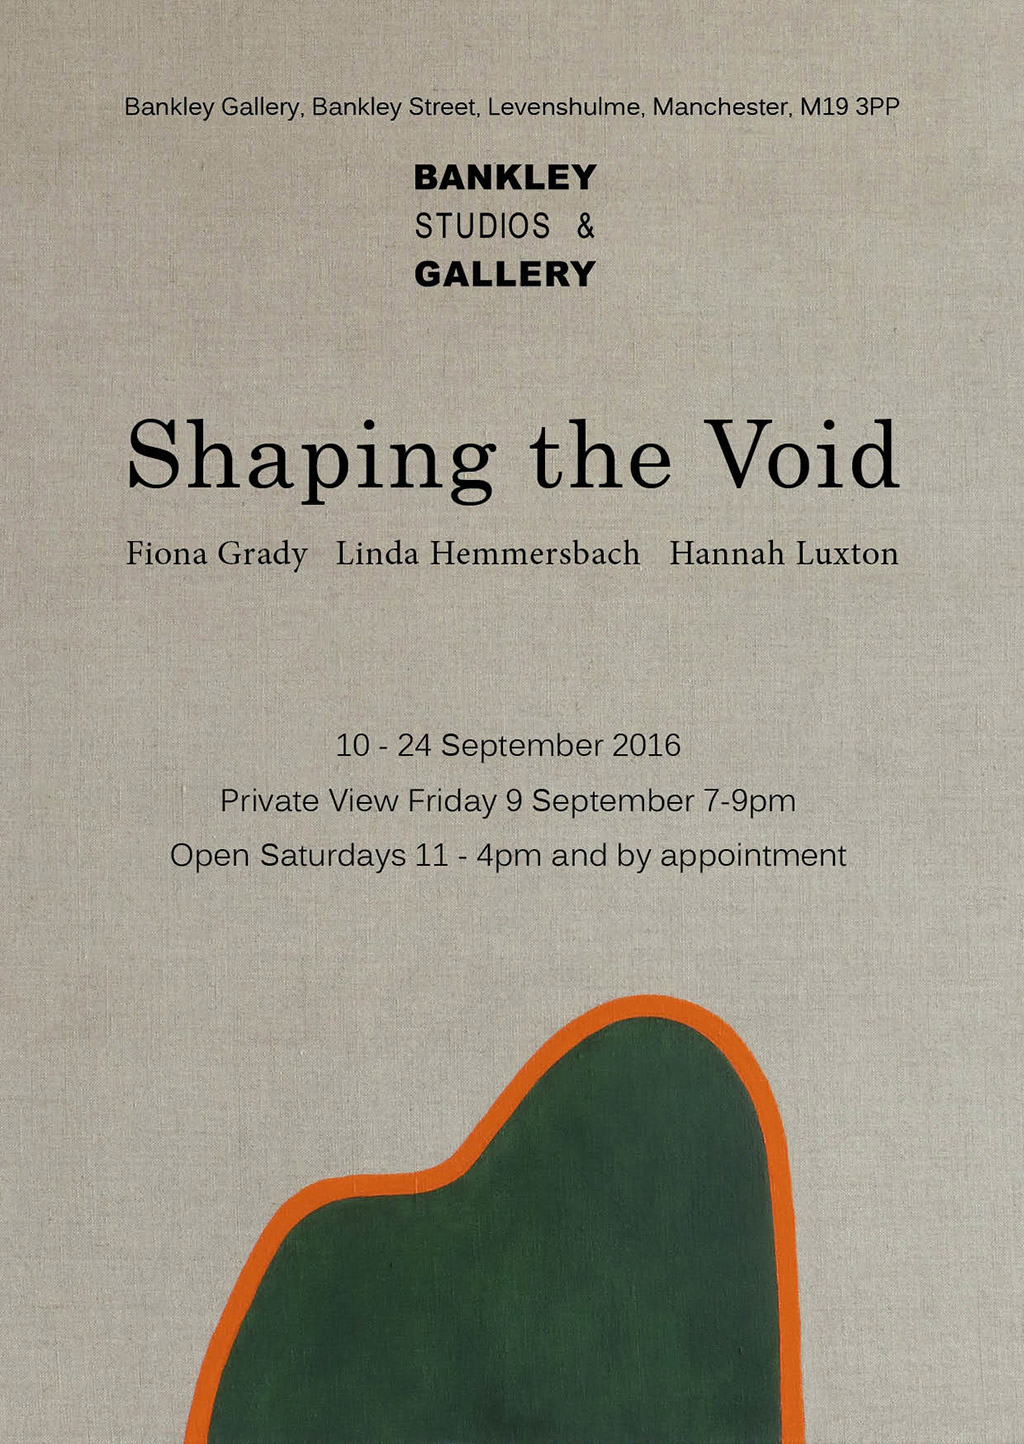 shaping-the-void_flyer